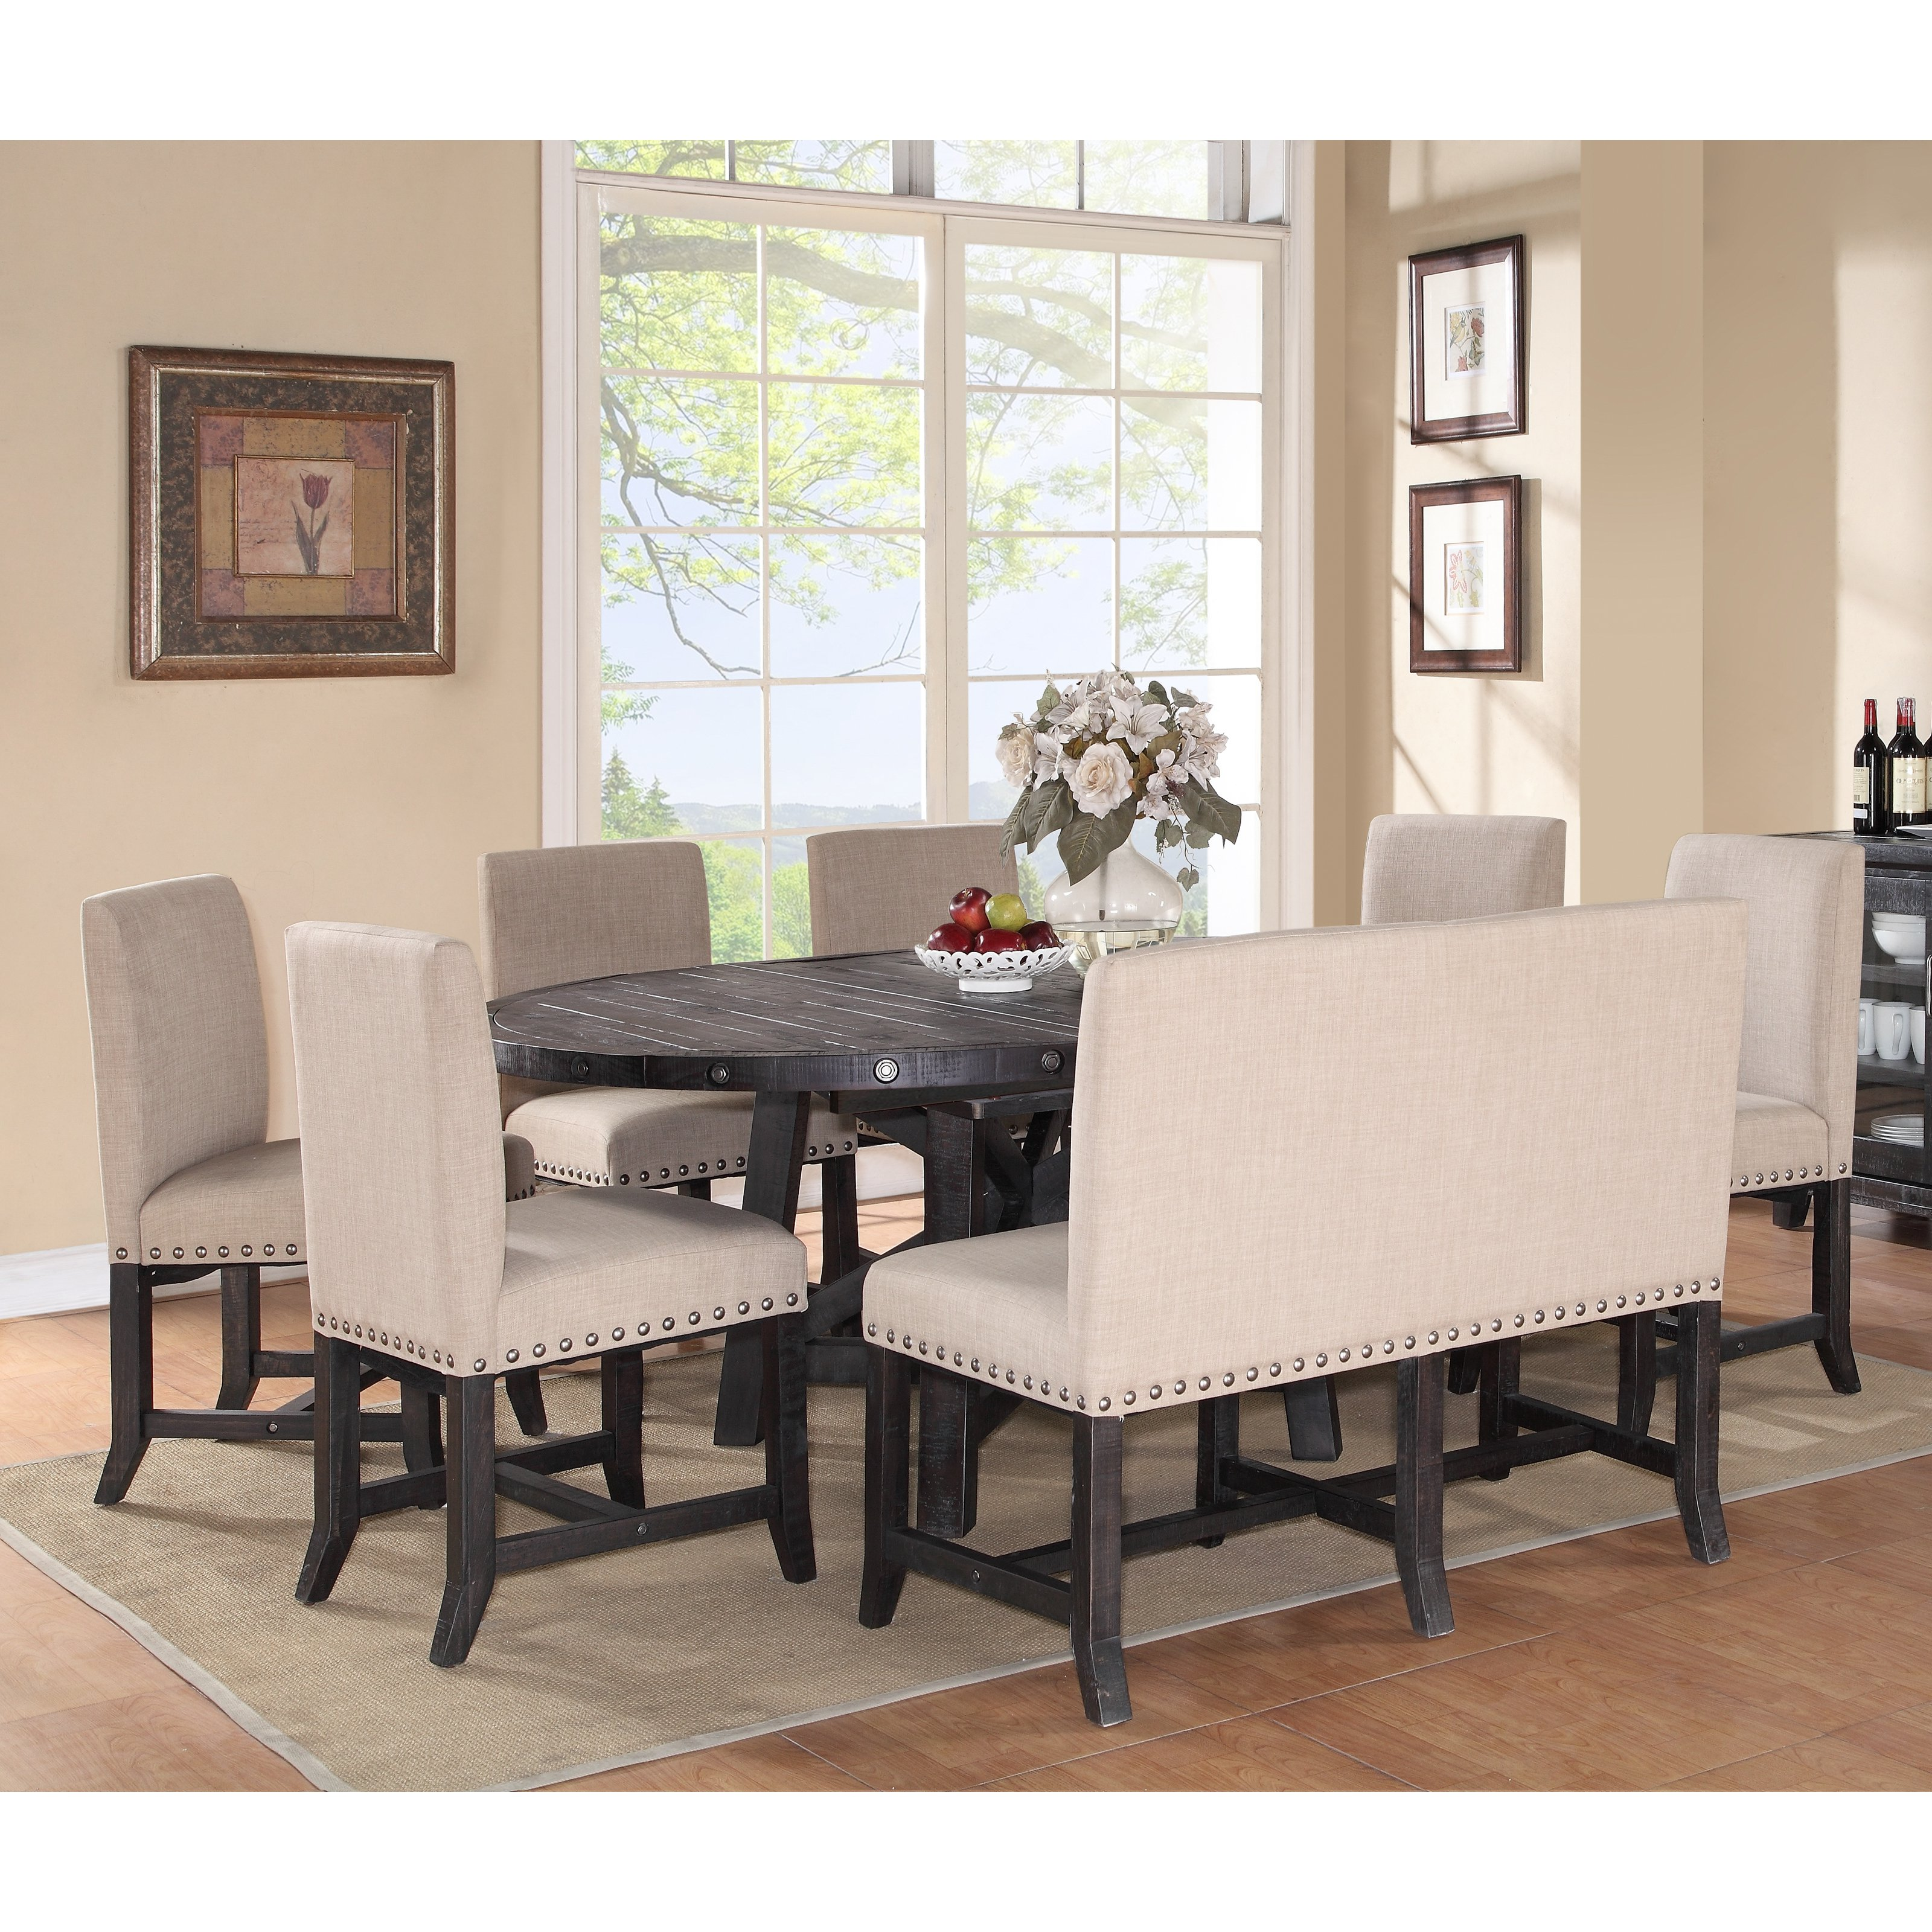 upholstered dining room set glamour modus yosemite piece oval dining table set with upholstered chairs and settee